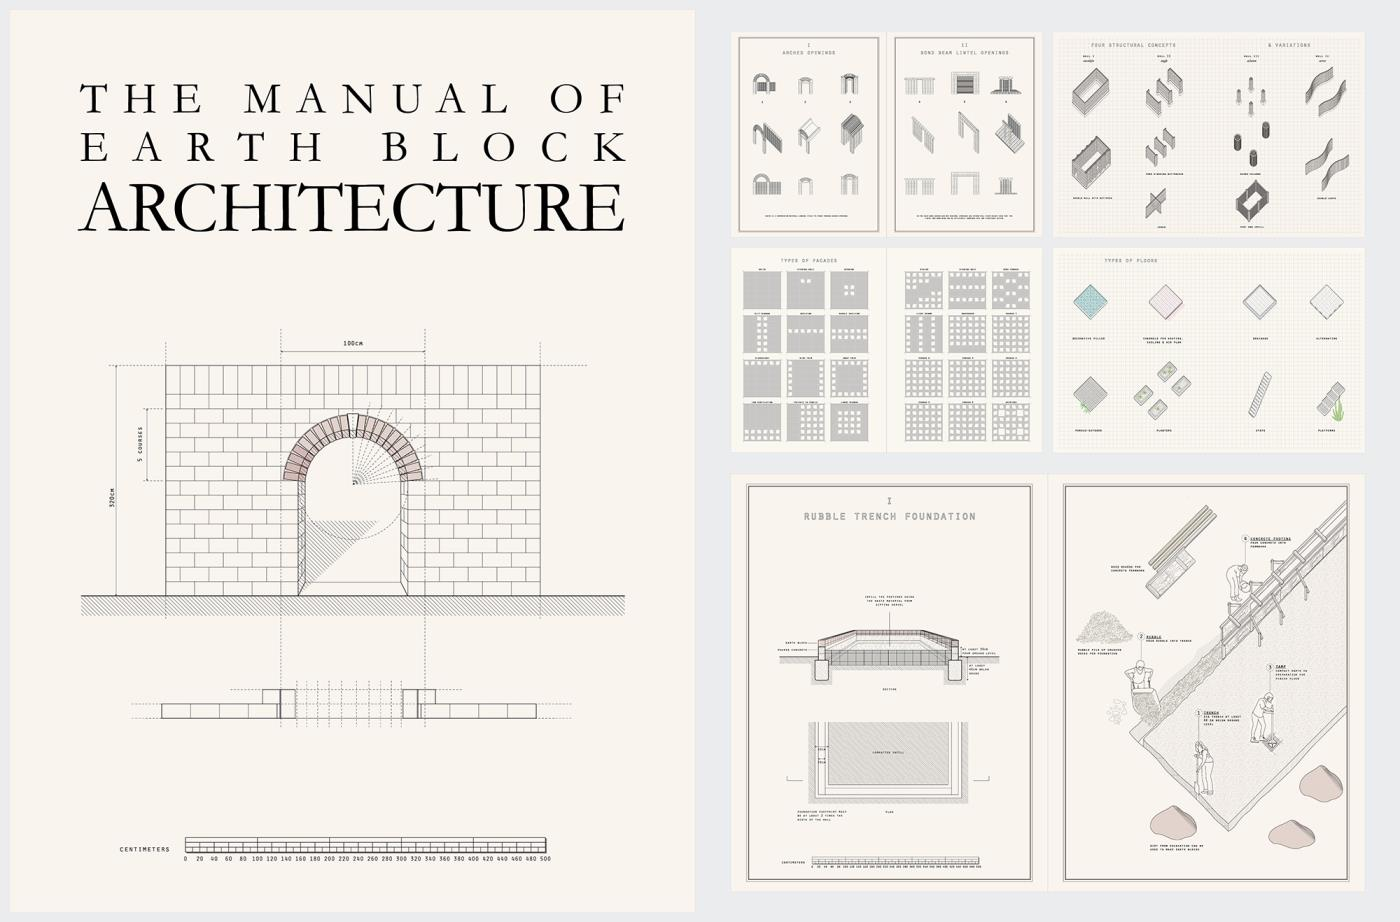 Presidents Medals: The Manual of Earth Block Architecture